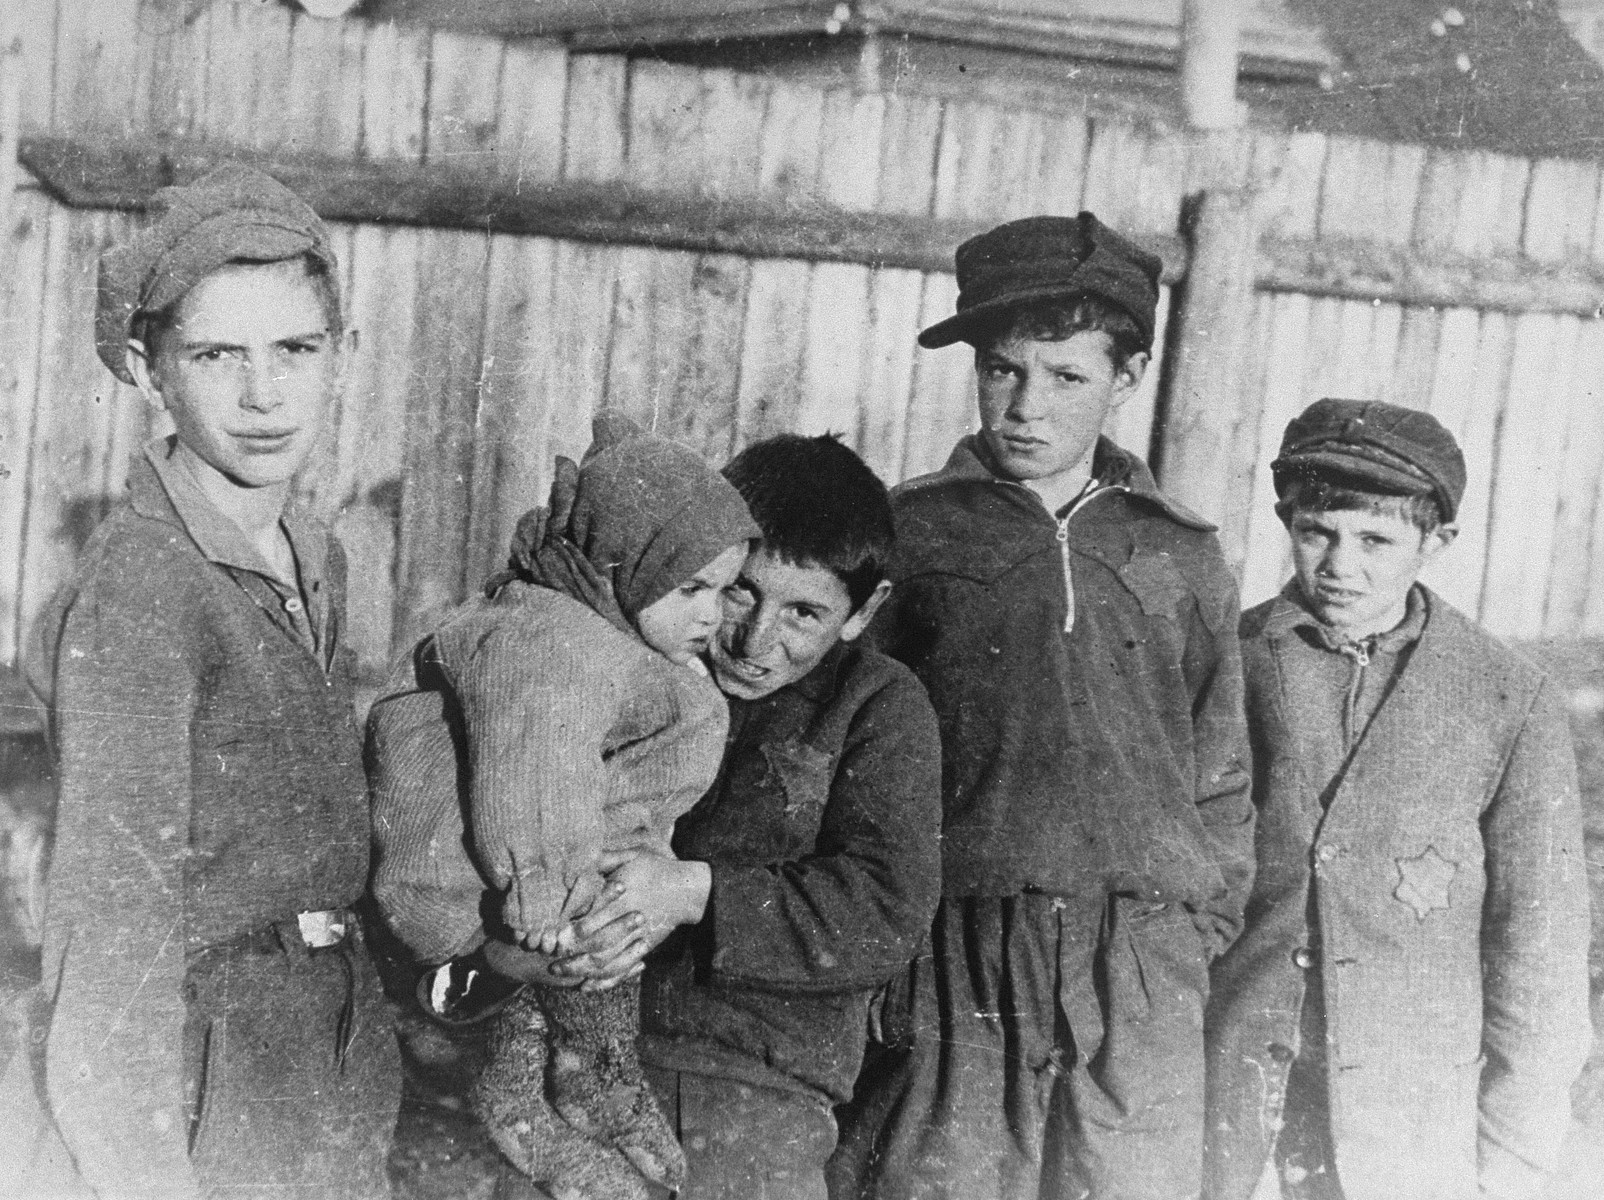 A group of young boys holding a small child in the Kovno ghetto.